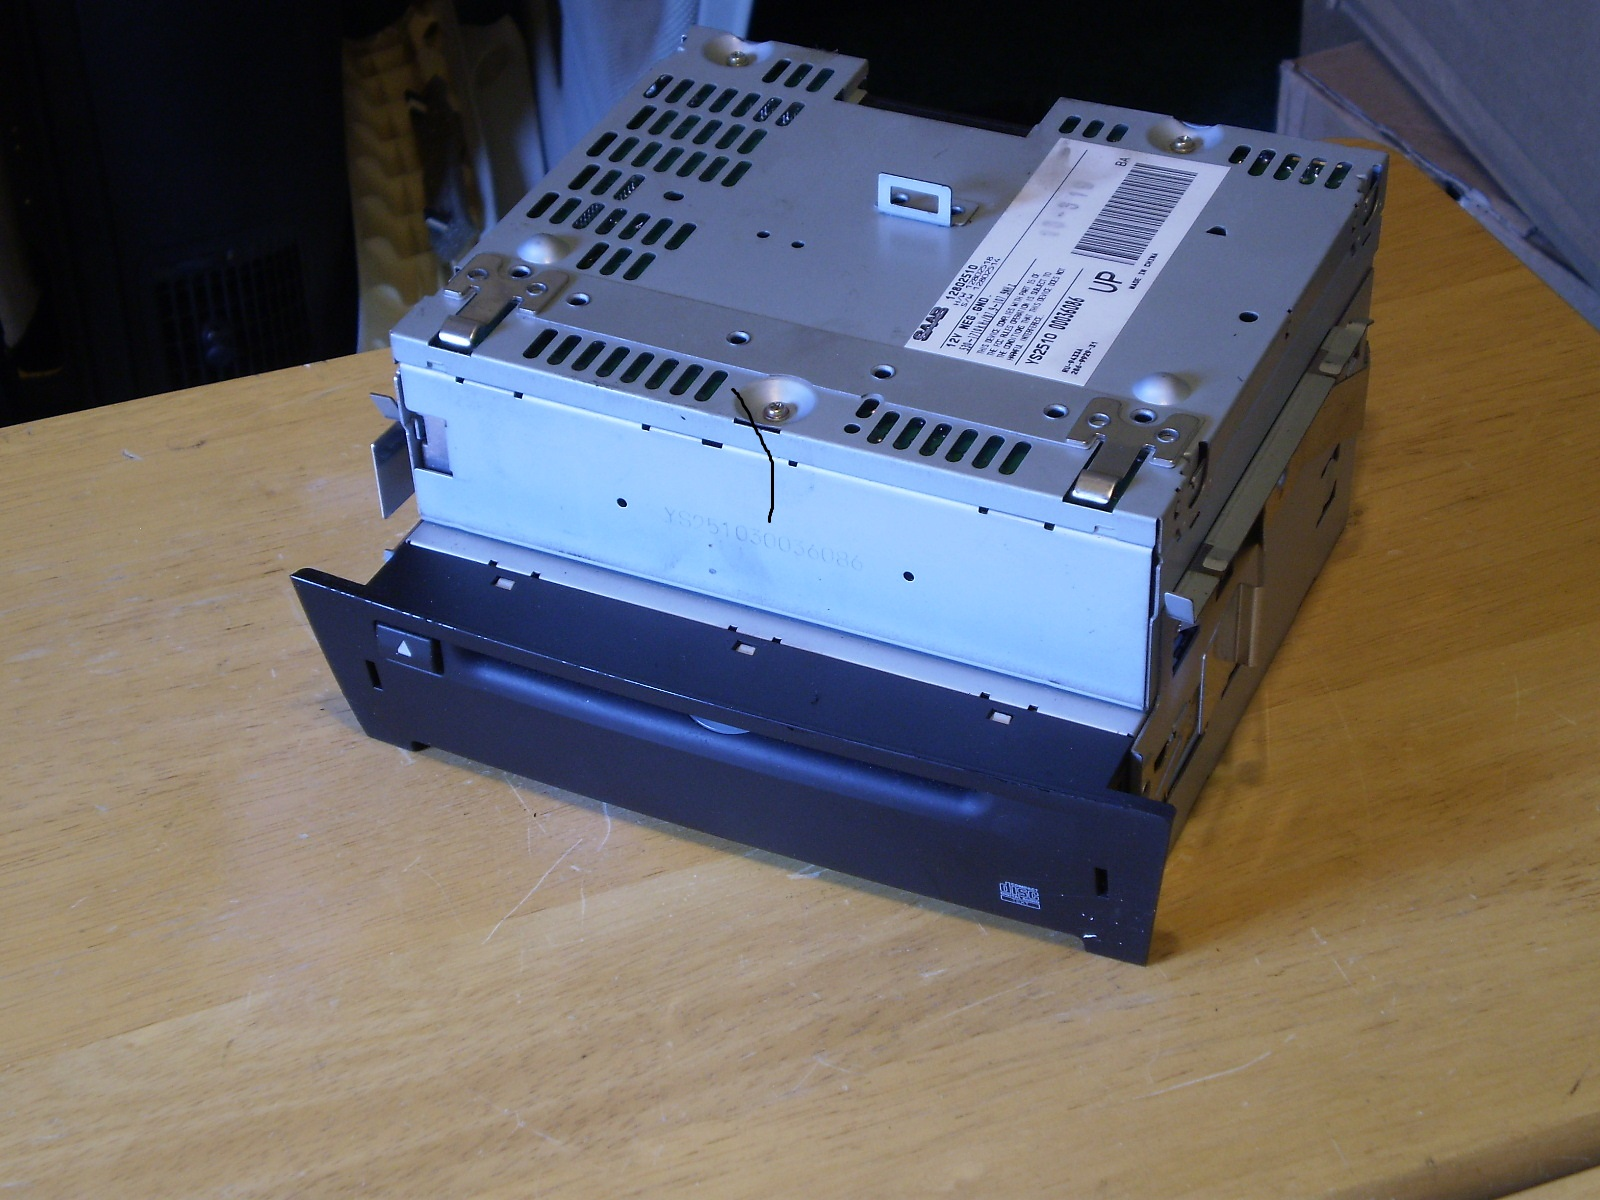 03-06 SAAB SINGLE DISC CD PLAYER IMAGE [A] [1,2]